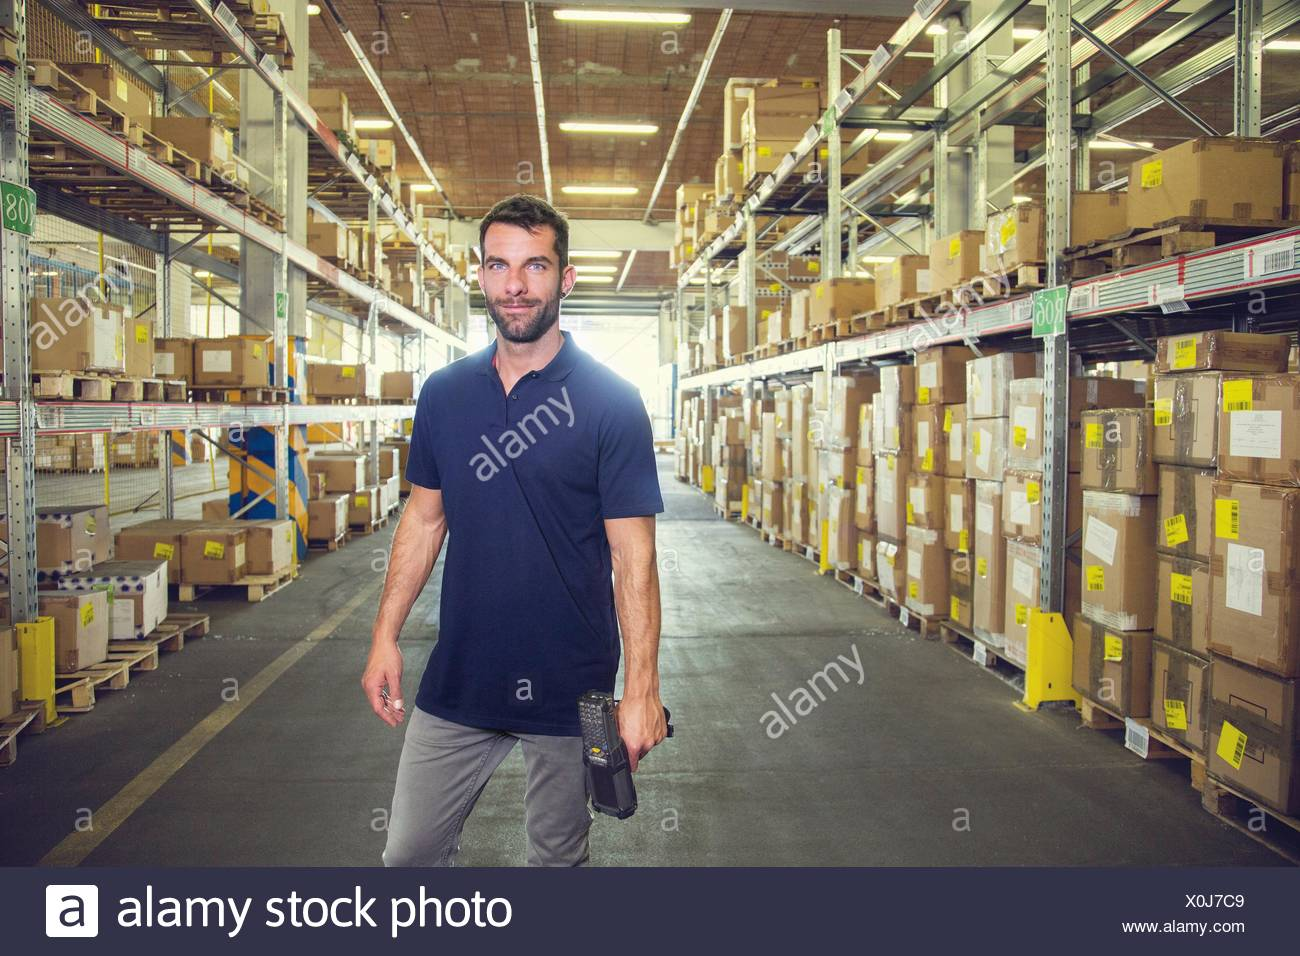 Portrait of male warehouse worker standing in distribution warehouse aisle - Stock Image